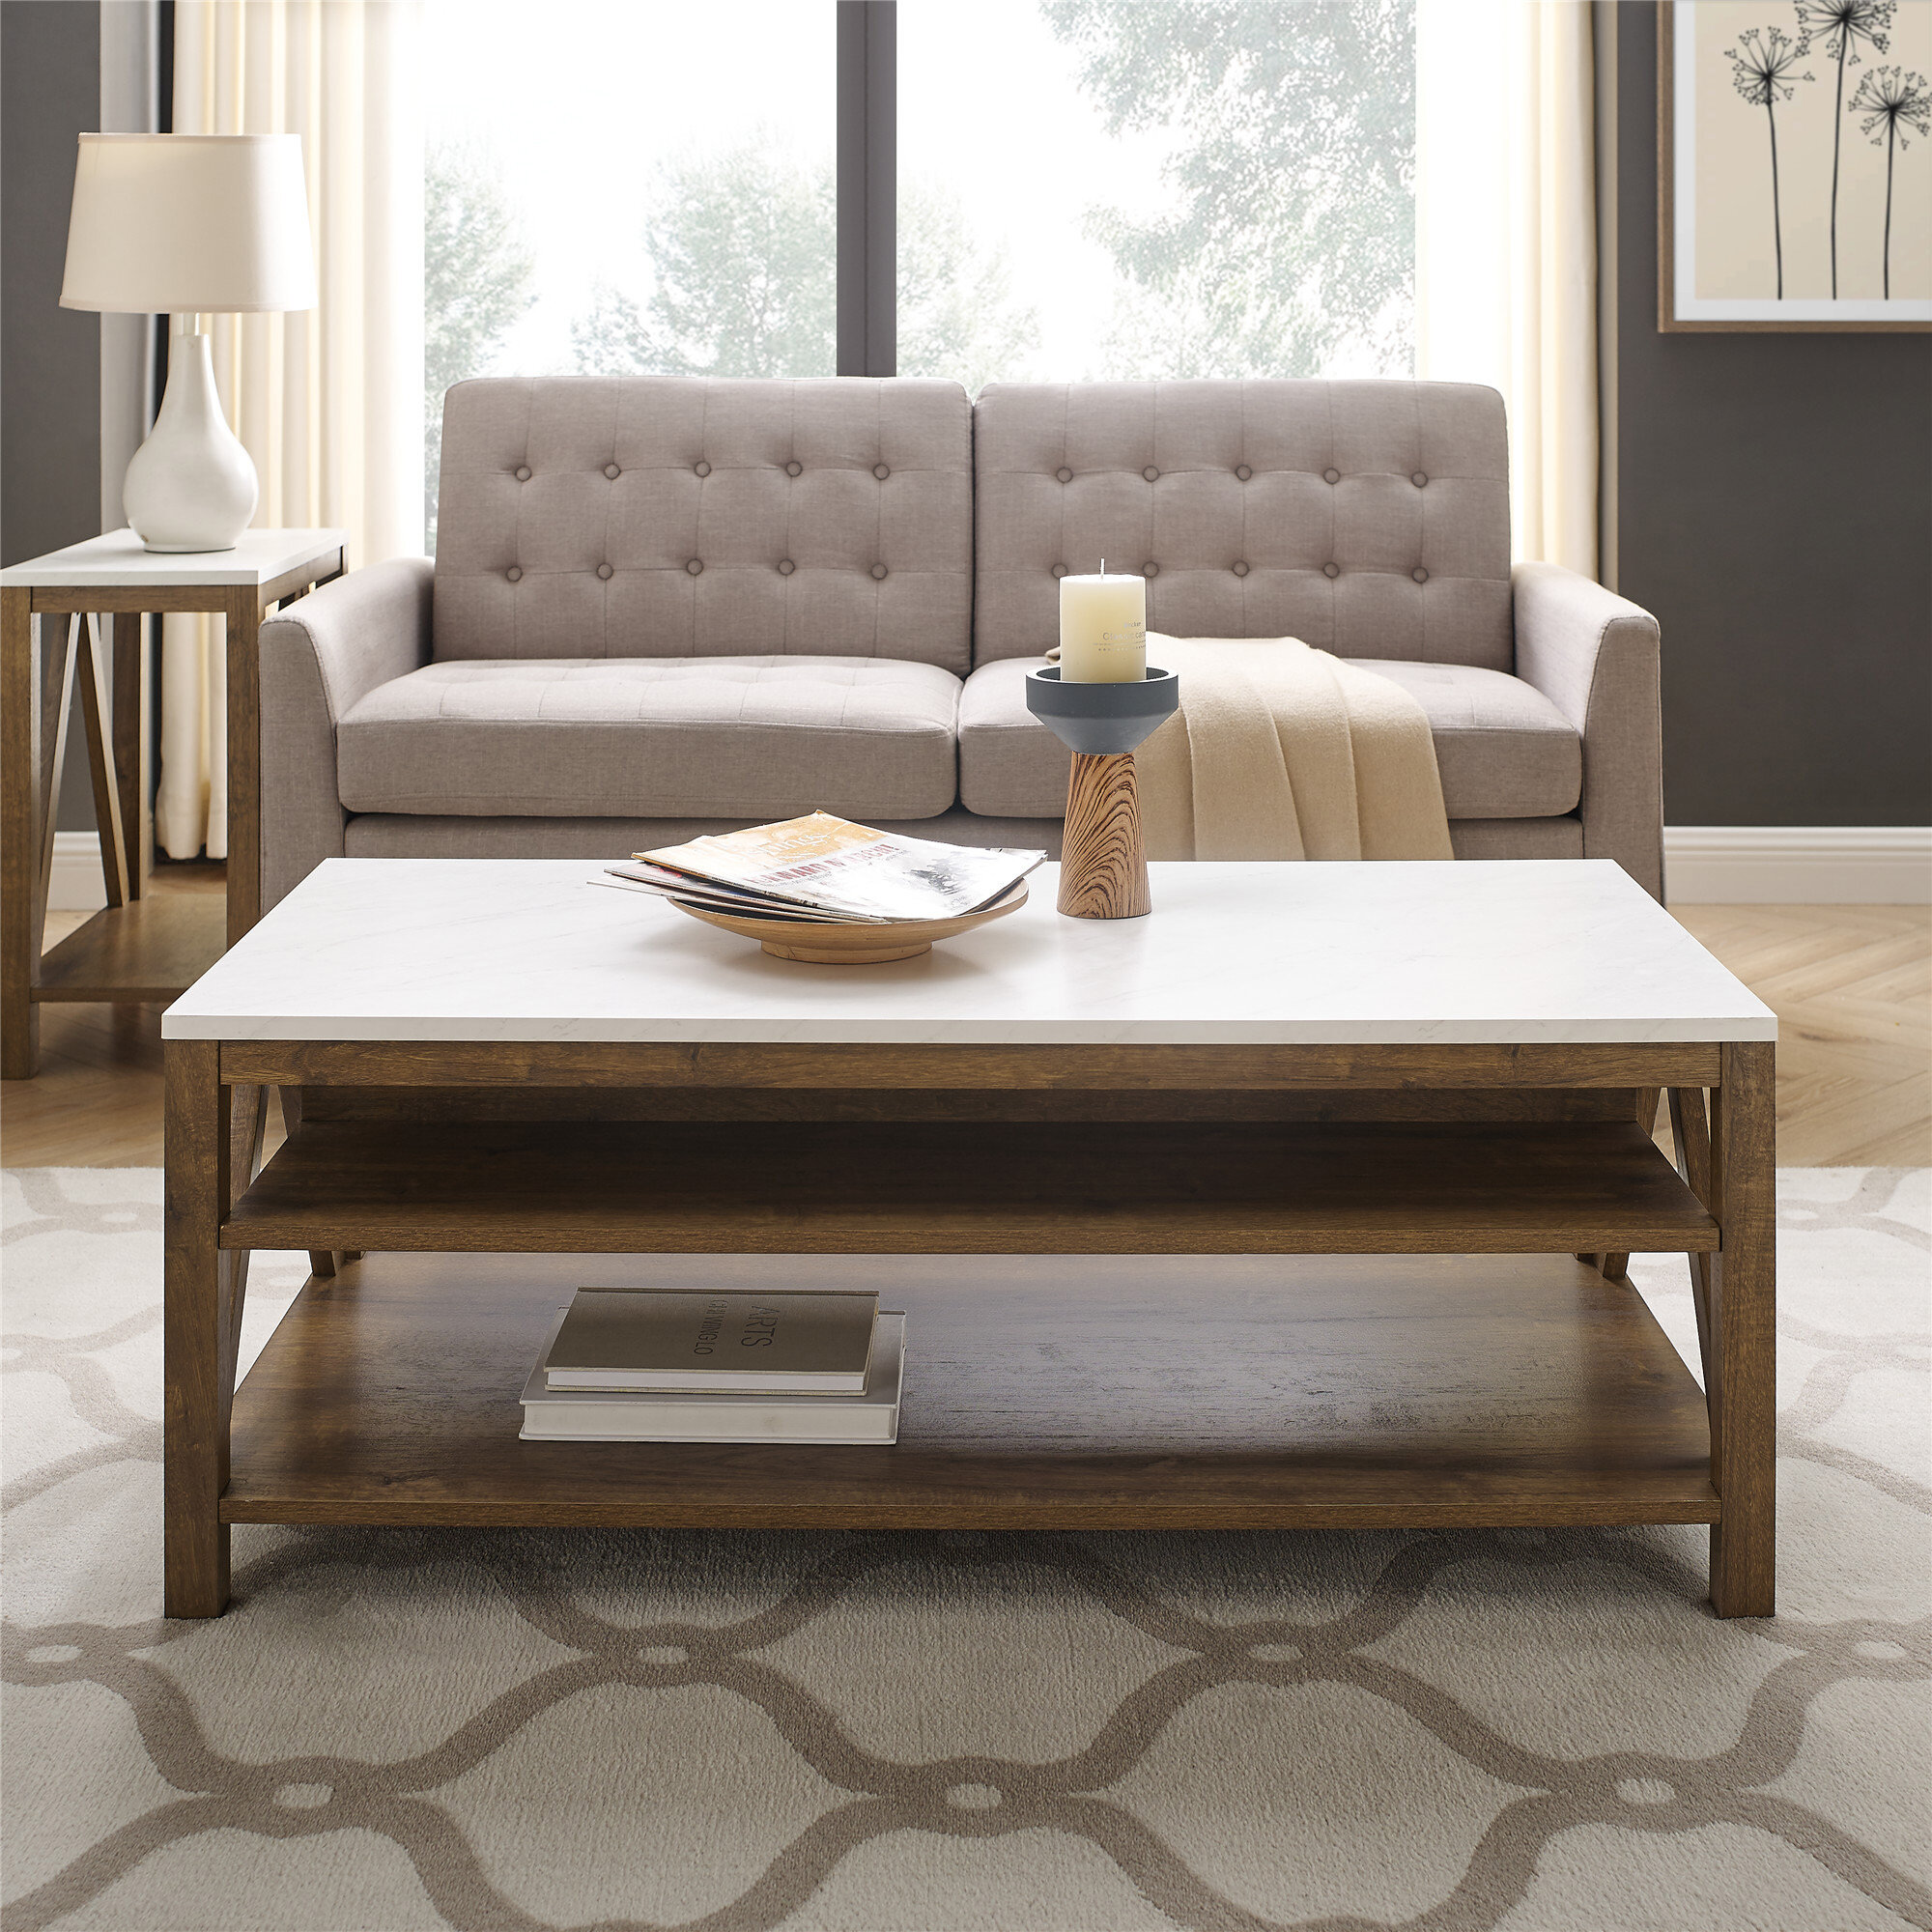 2 Piece Set Cabin Lodge Coffee Table Sets You Ll Love In 2021 Wayfair